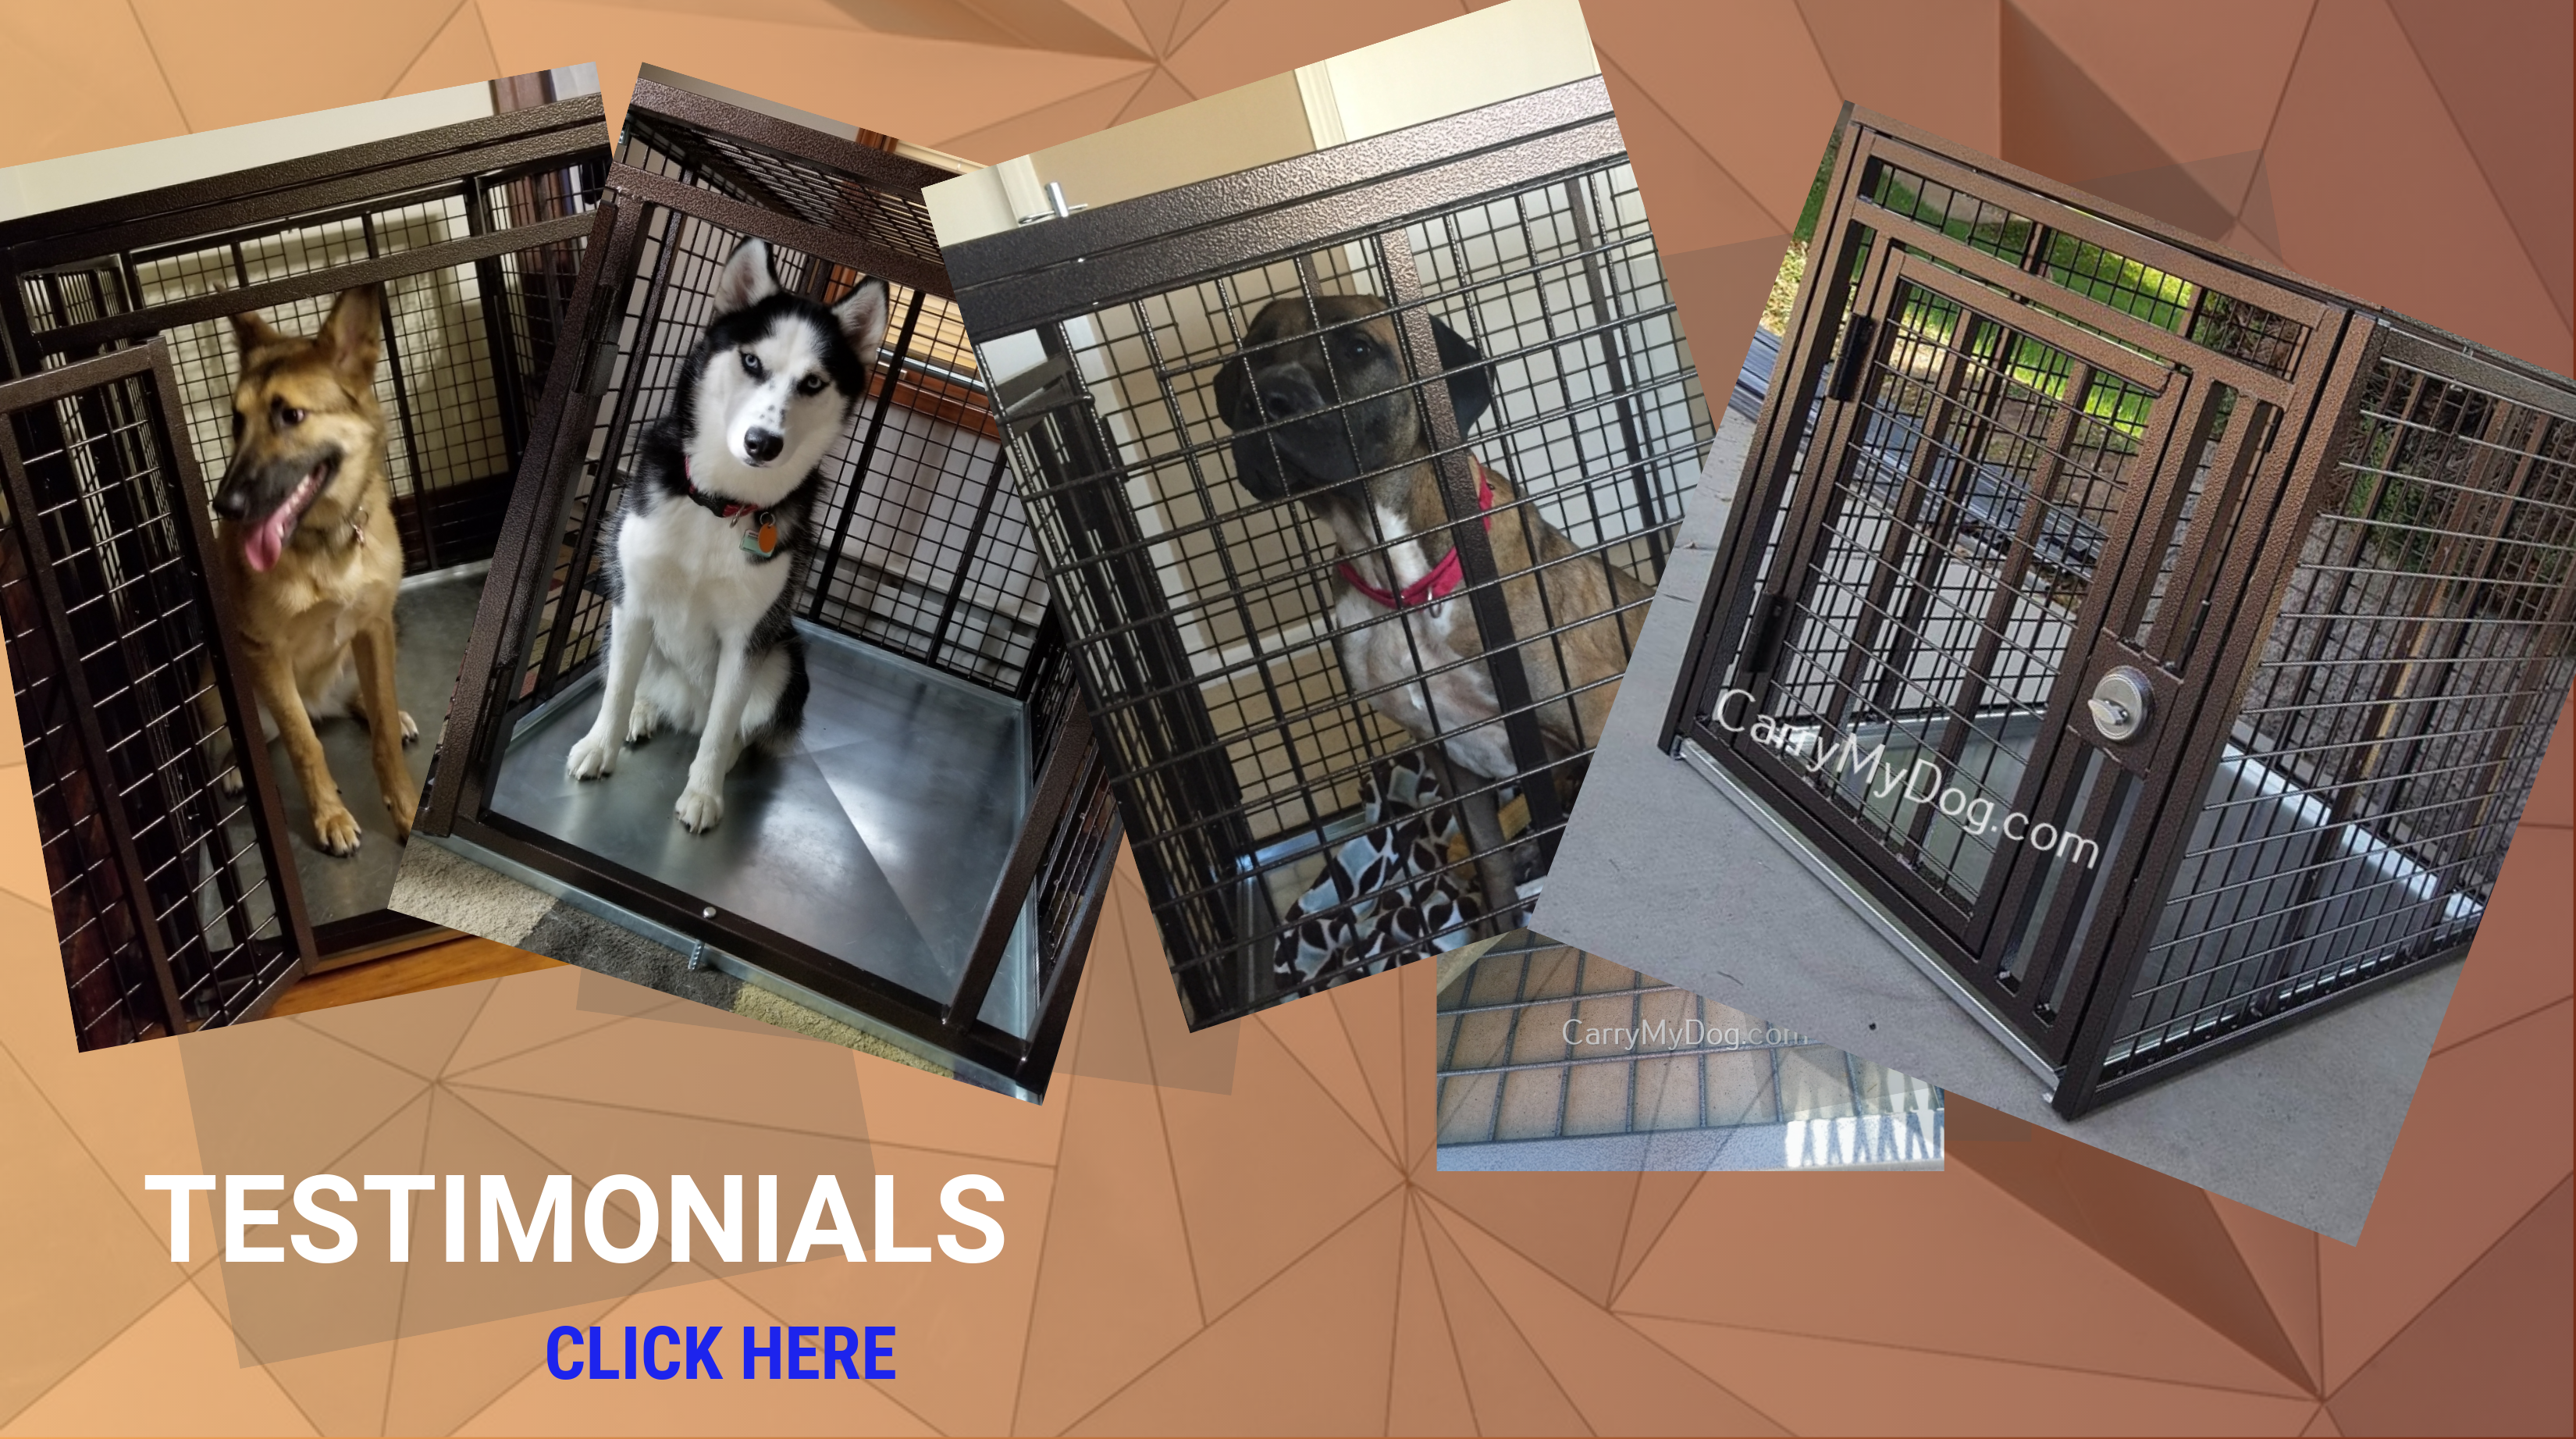 Xtreme Heavy duty dog crates from carrymydog.com testimonials